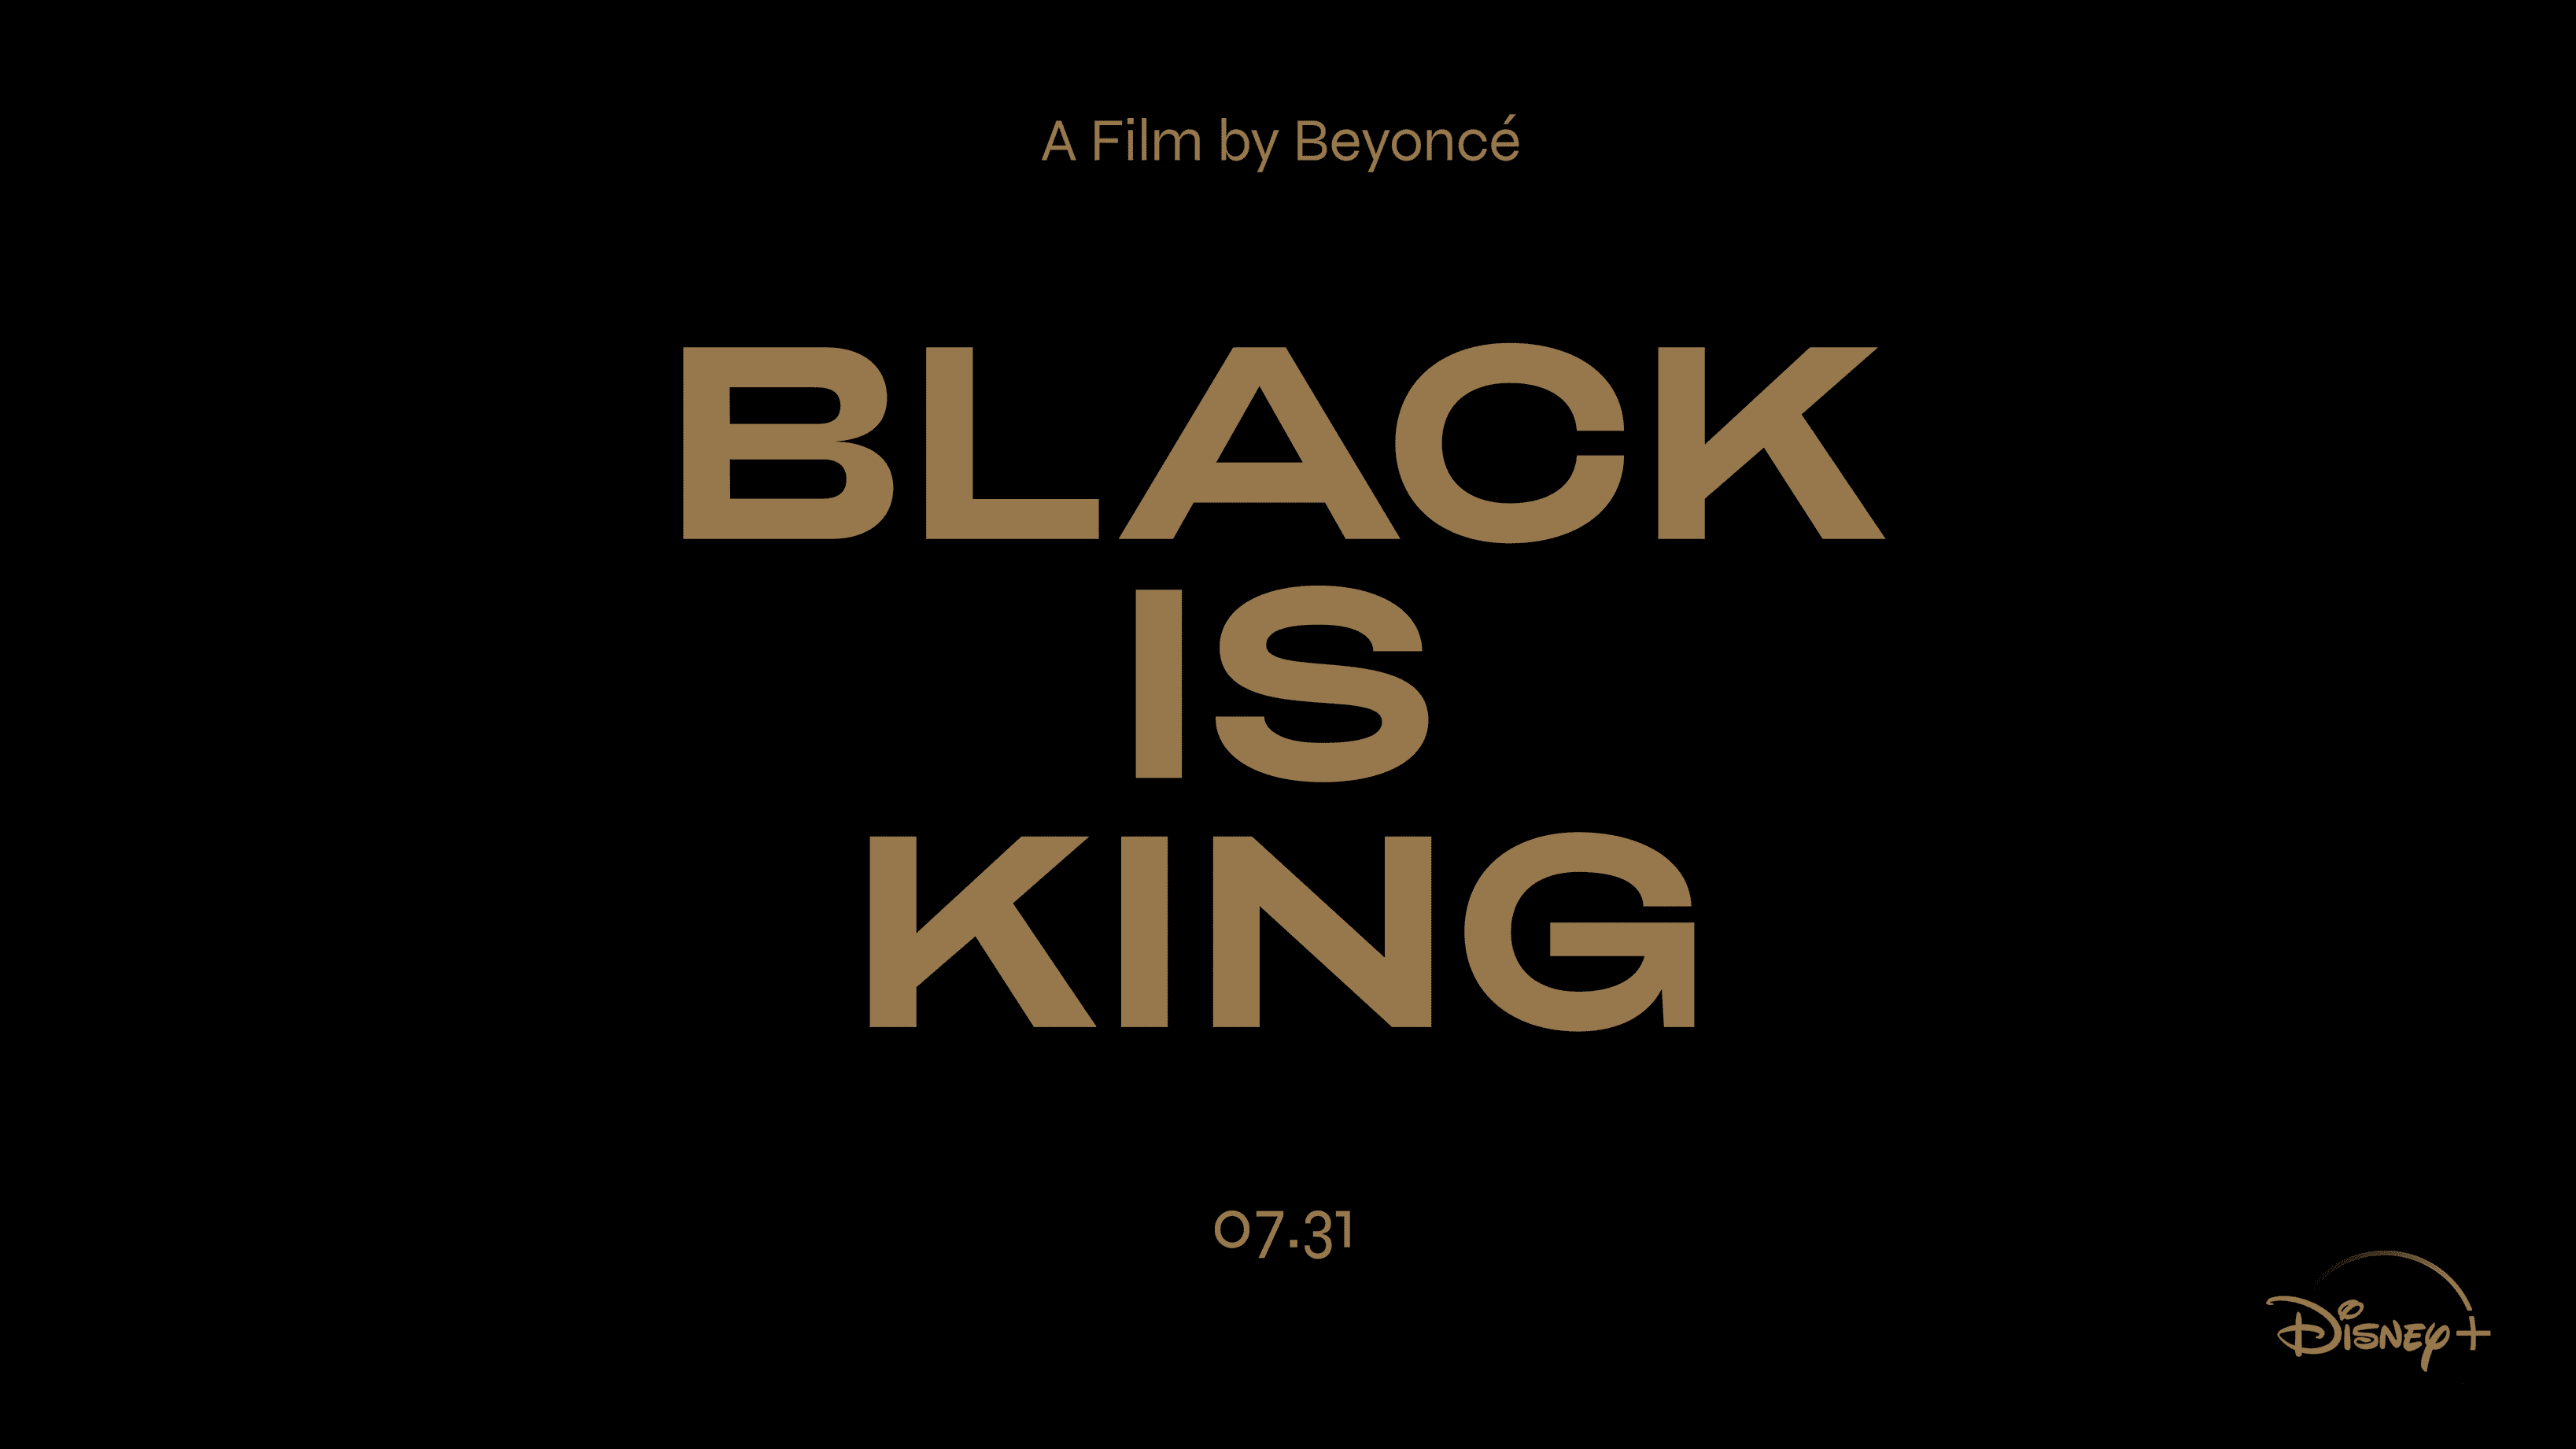 Black Is King by Beyonce on Disney Plus